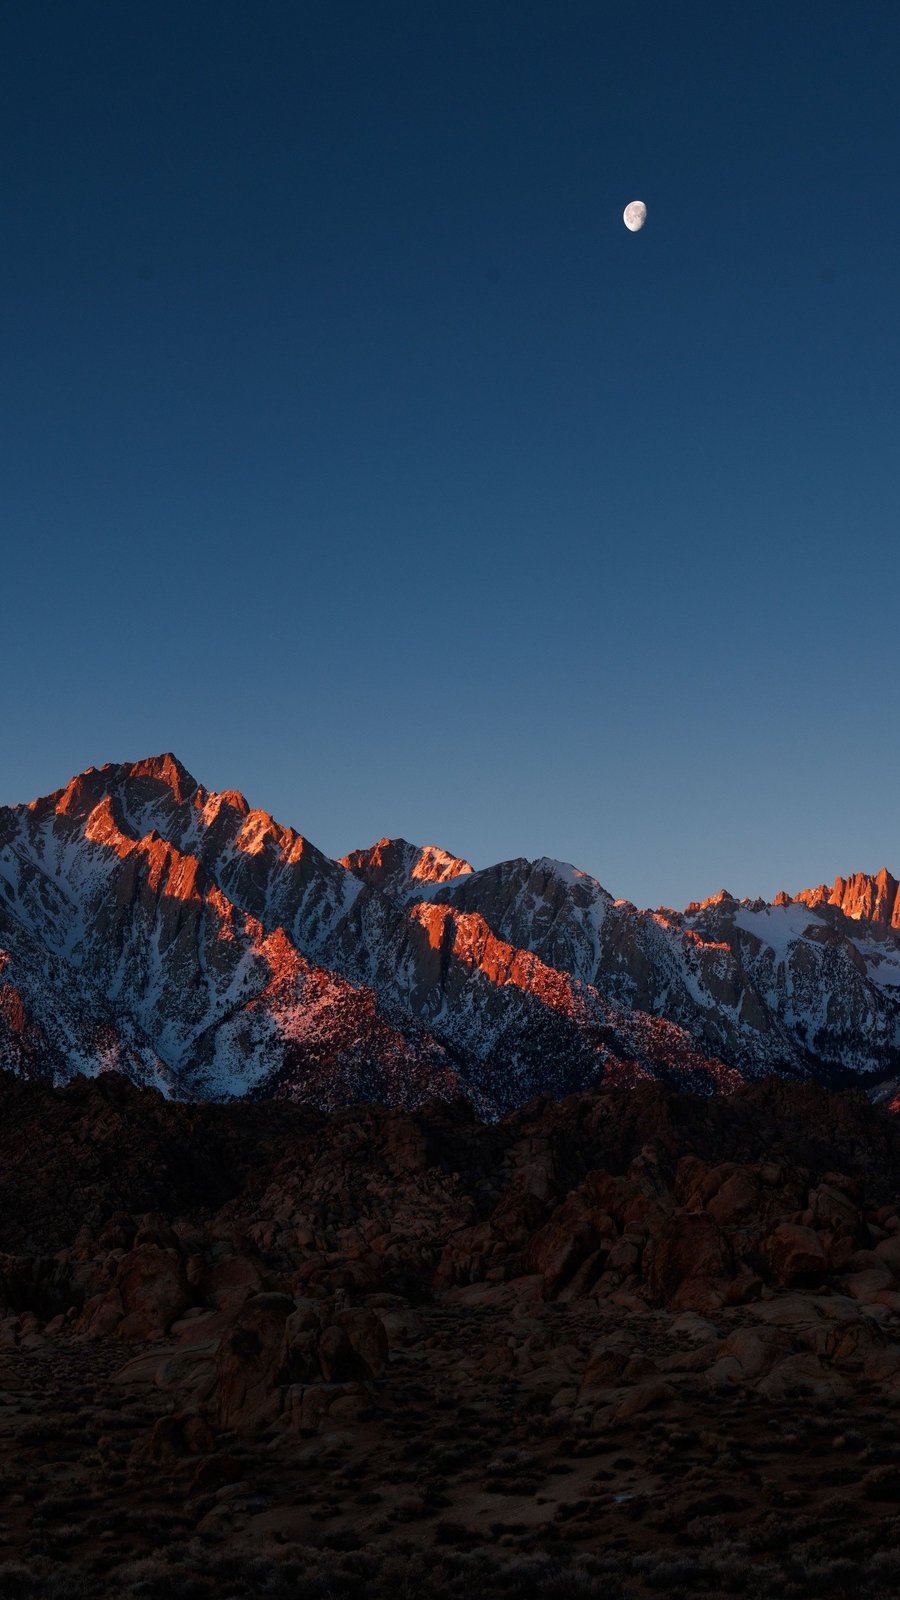 mount whitney alabama hills iPhone Wallpaper iphoneswallpapers com